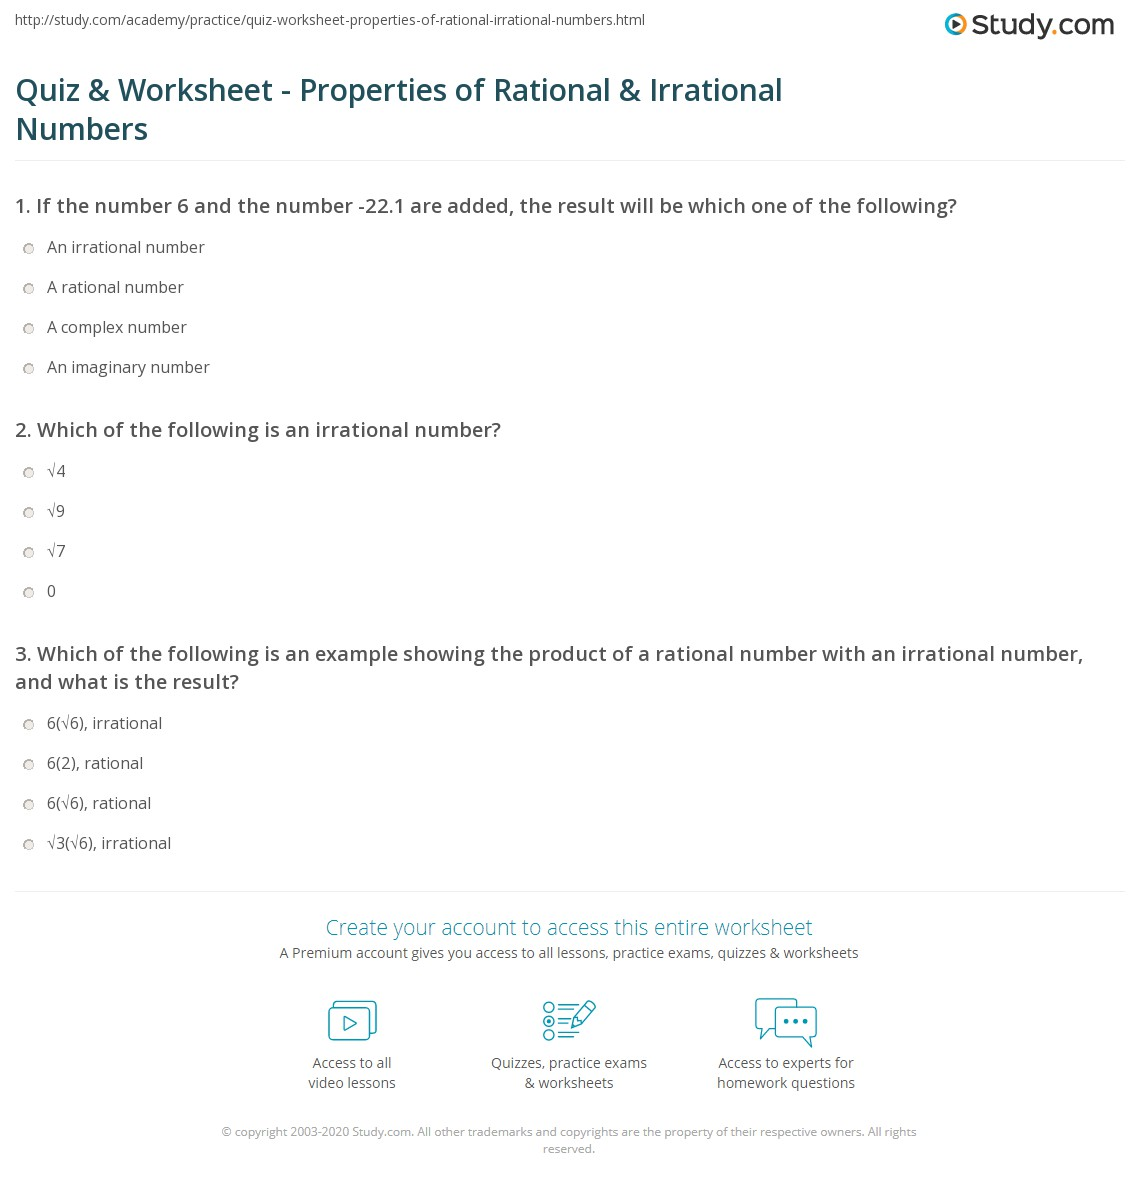 Quiz Worksheet Properties of Rational Irrational Numbers – Rational or Irrational Worksheet